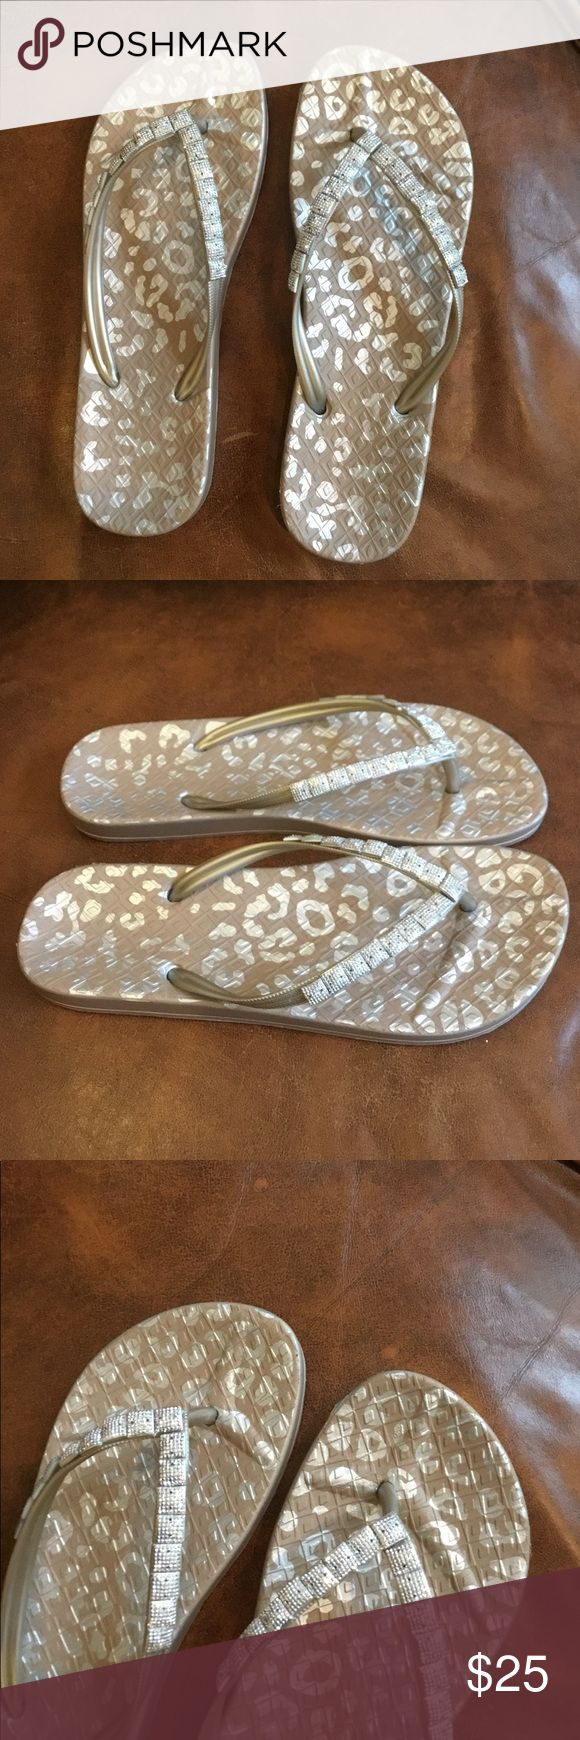 Never wore Rubber flip flop Super cute embellished rubber flip flops perfect for summer, beach etc. never wore size 9. no brand Shoes Sandals